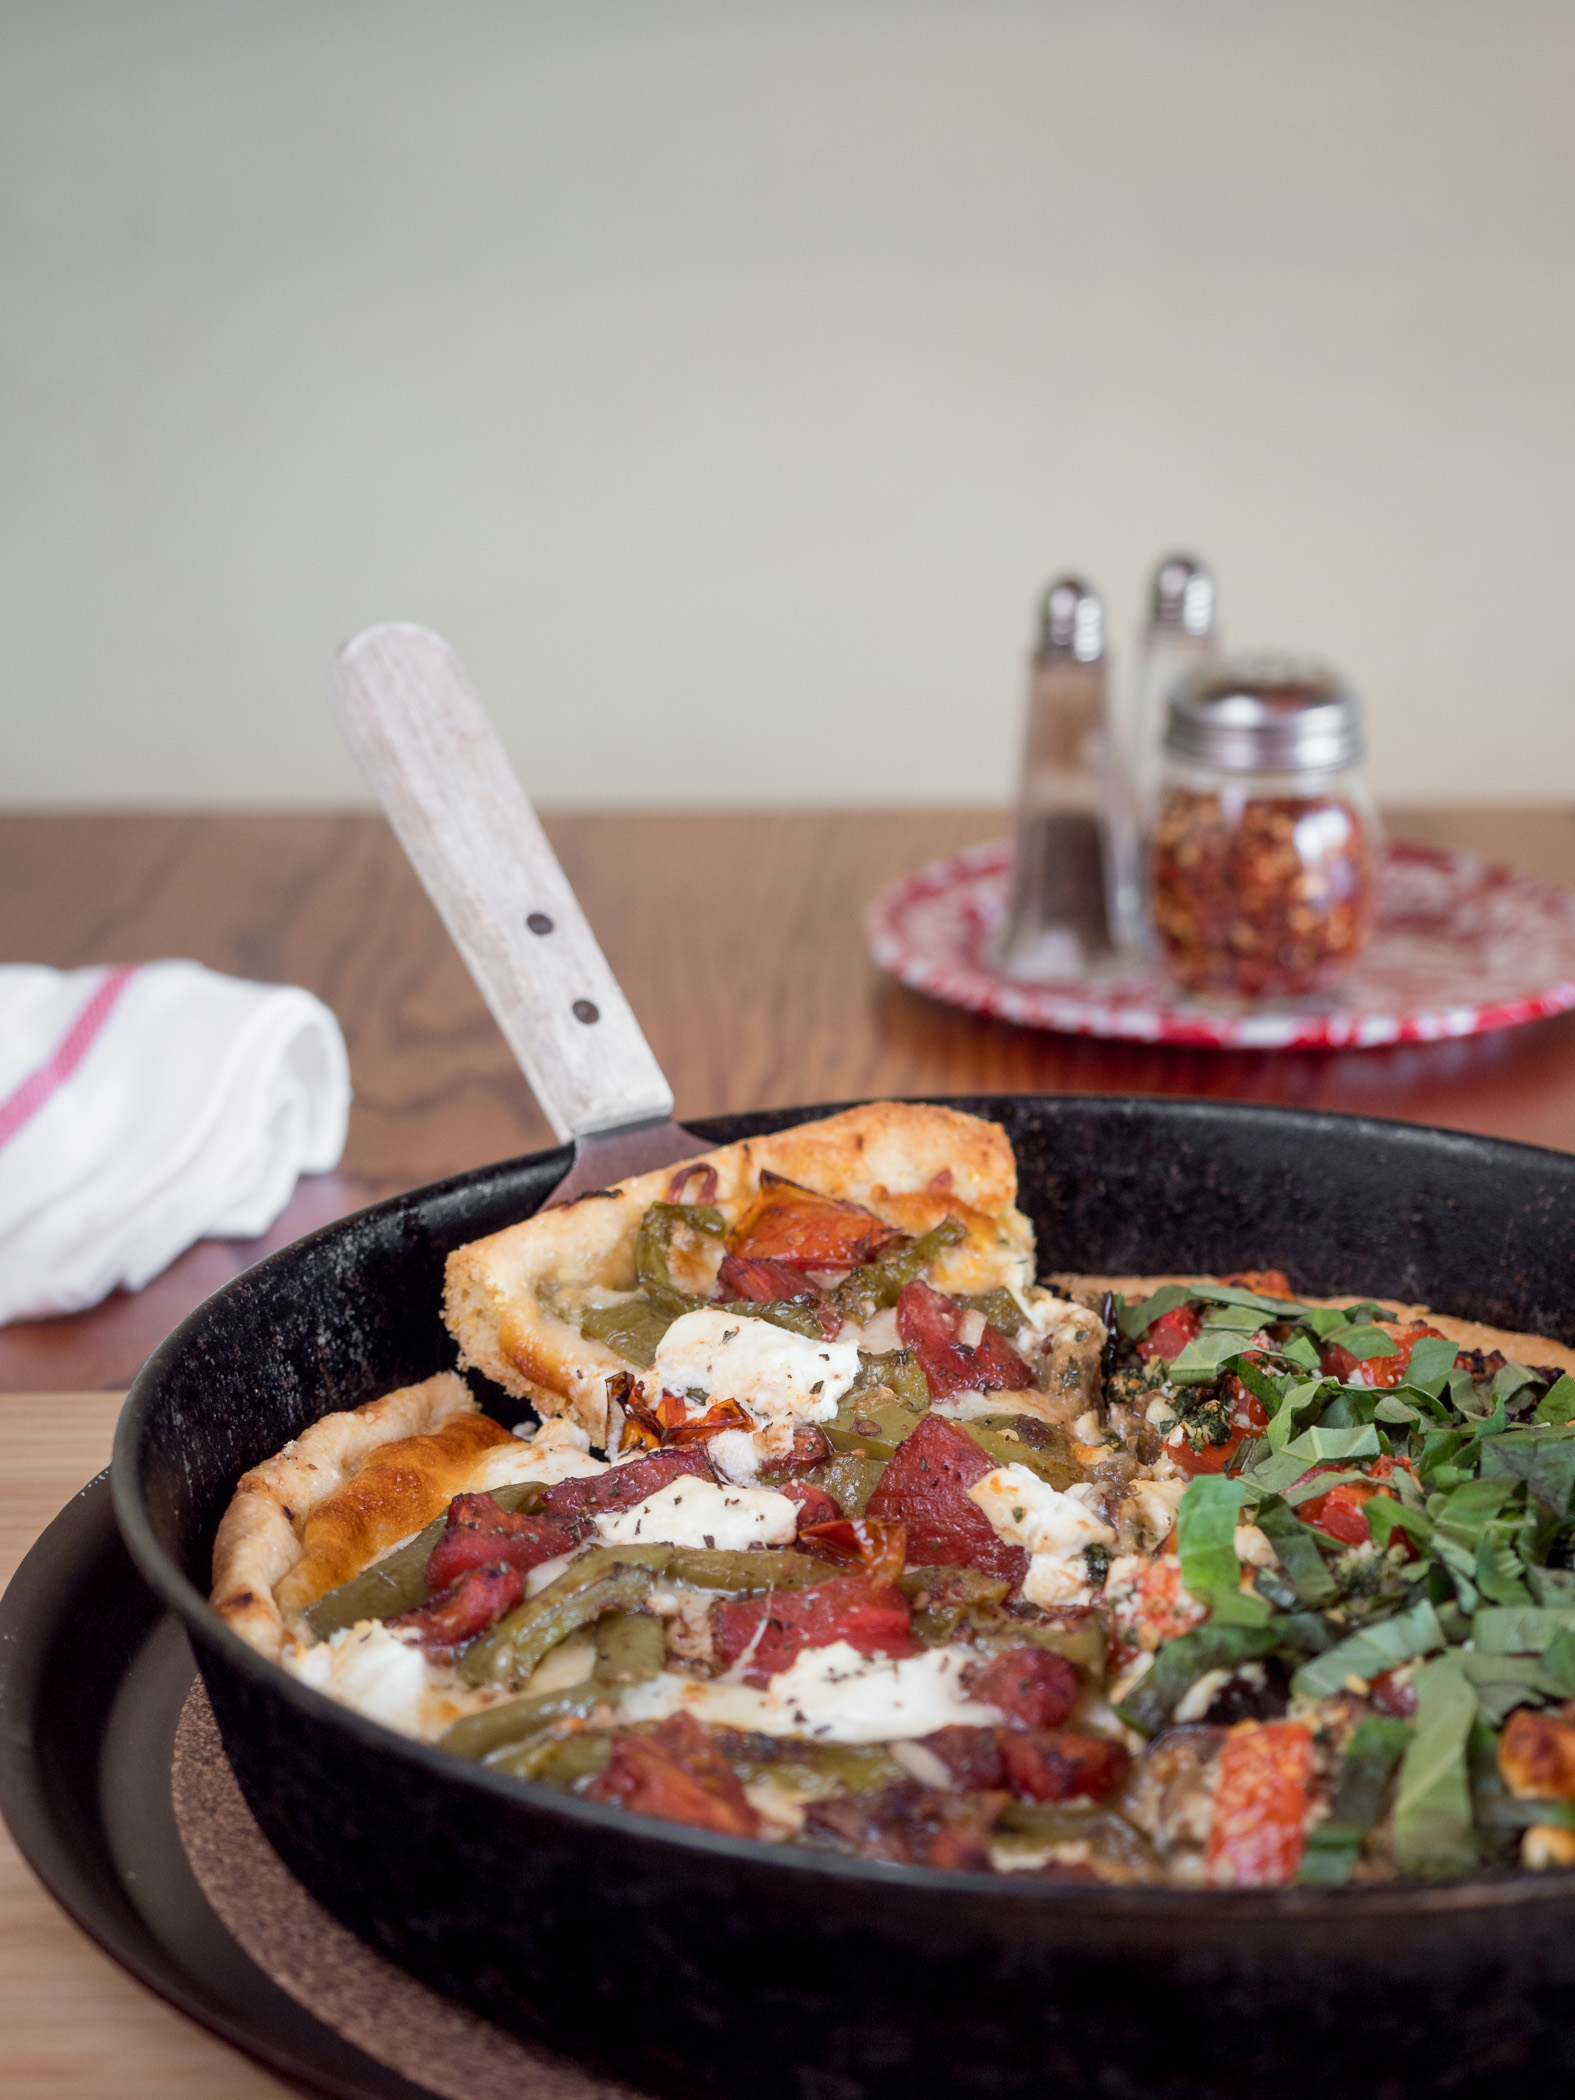 fare photo portland oregon food photographer photography jeremy pawlowski texas austin amarillo pizza dove vivi